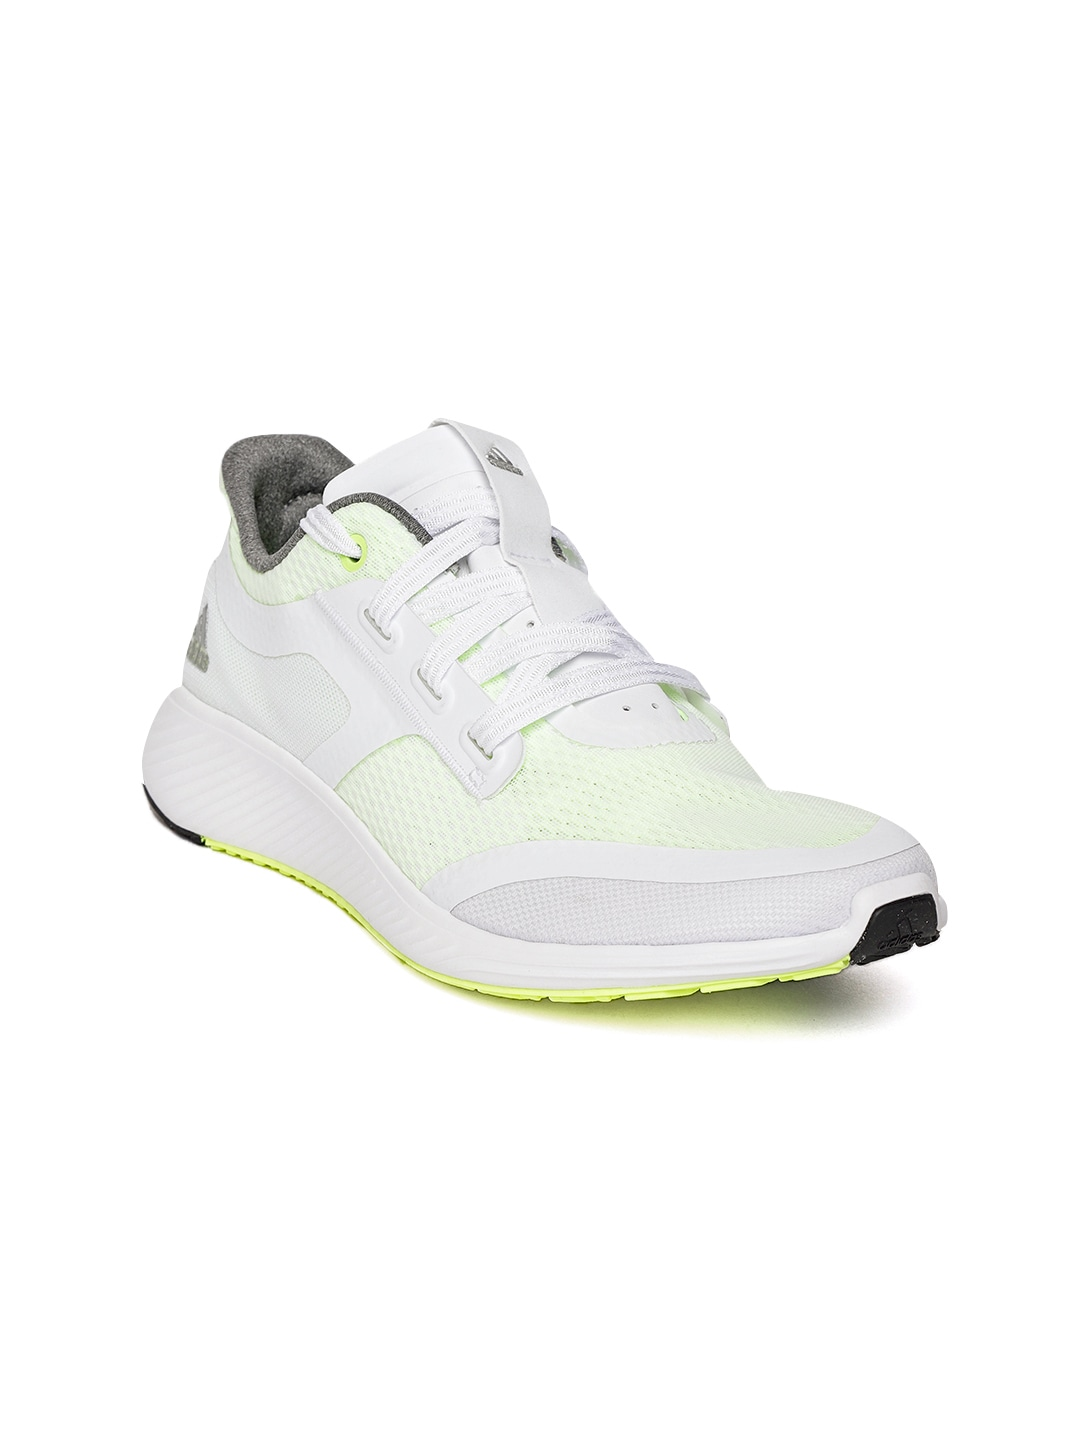 buy popular bbcf4 31c49 Adidas Shoes - Buy Adidas Shoes for Men   Women Online - Myntra